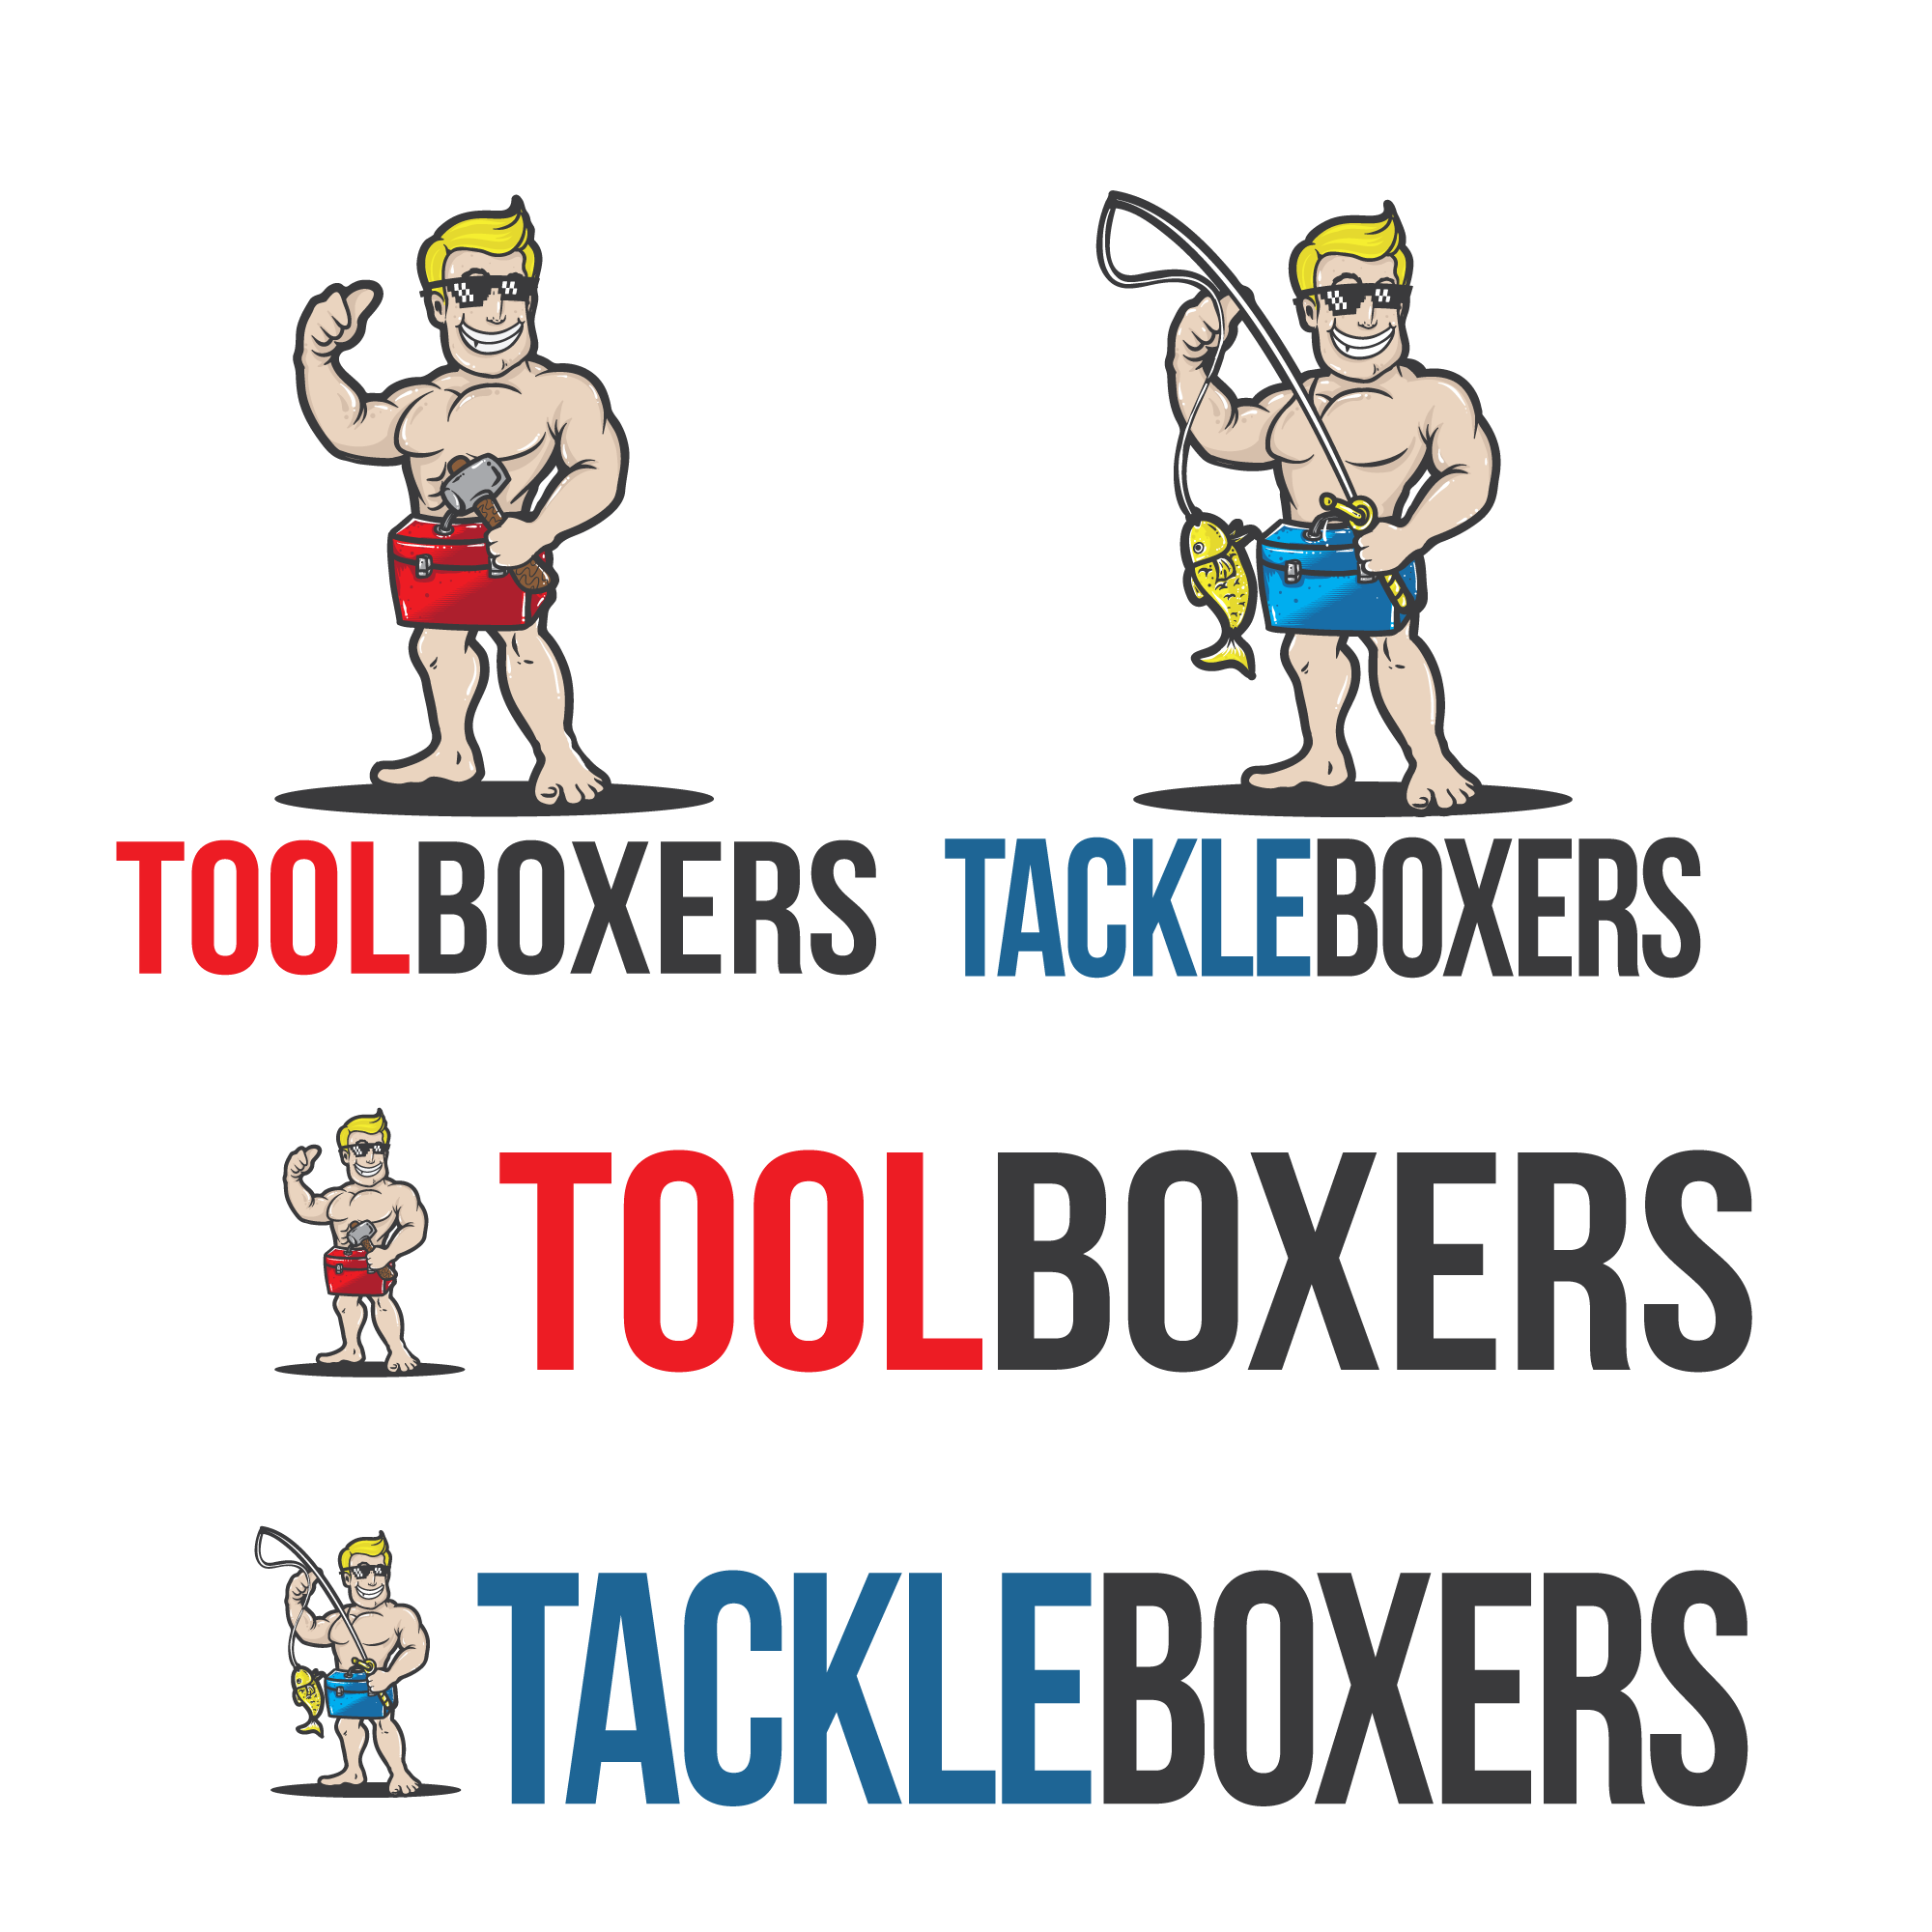 Toolboxers and Tackleboxers